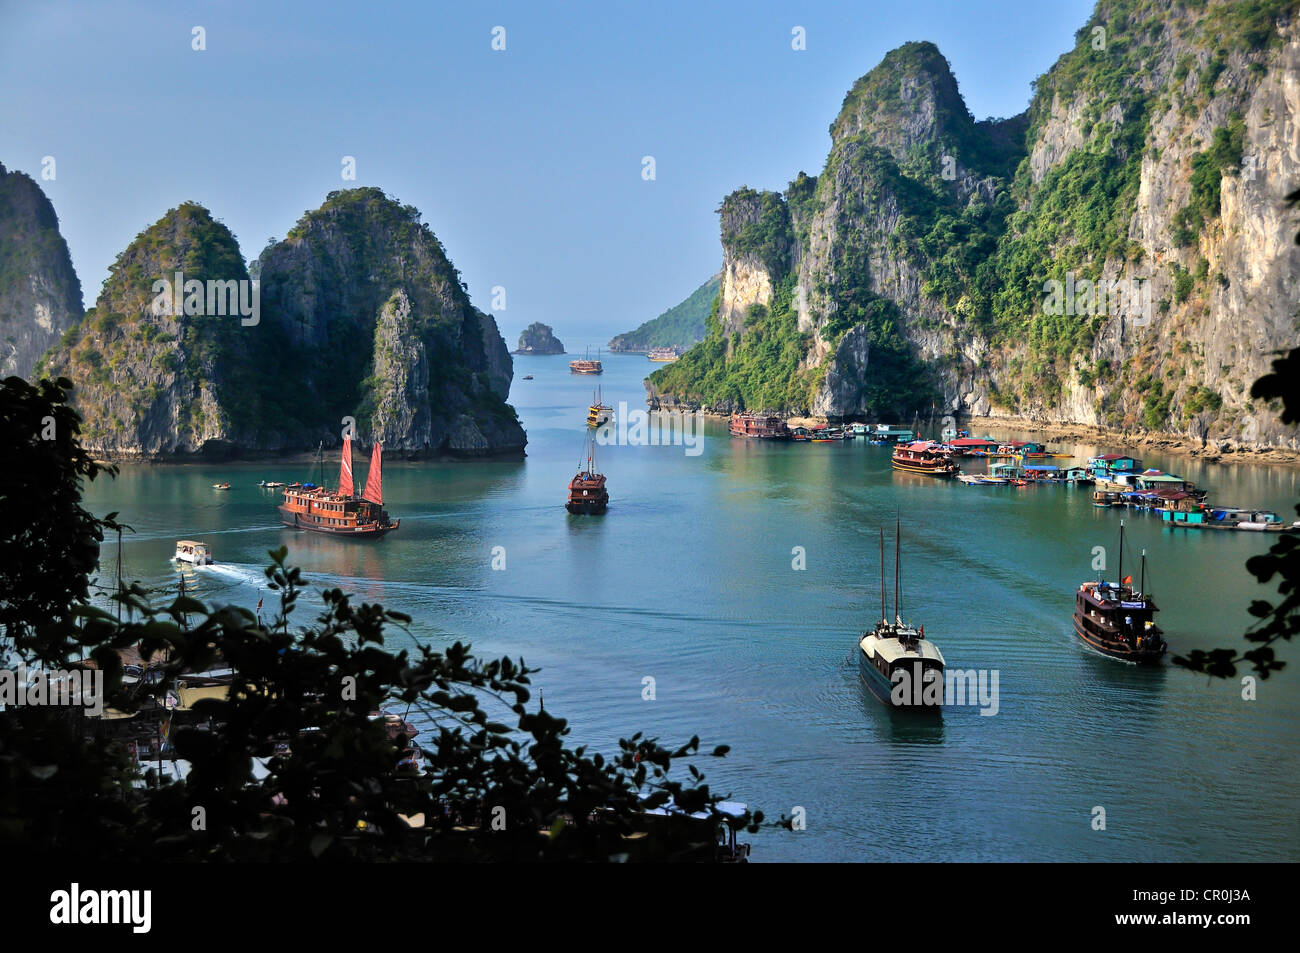 Boats And Junks In Halong Bay Karst Mountains In The Sea